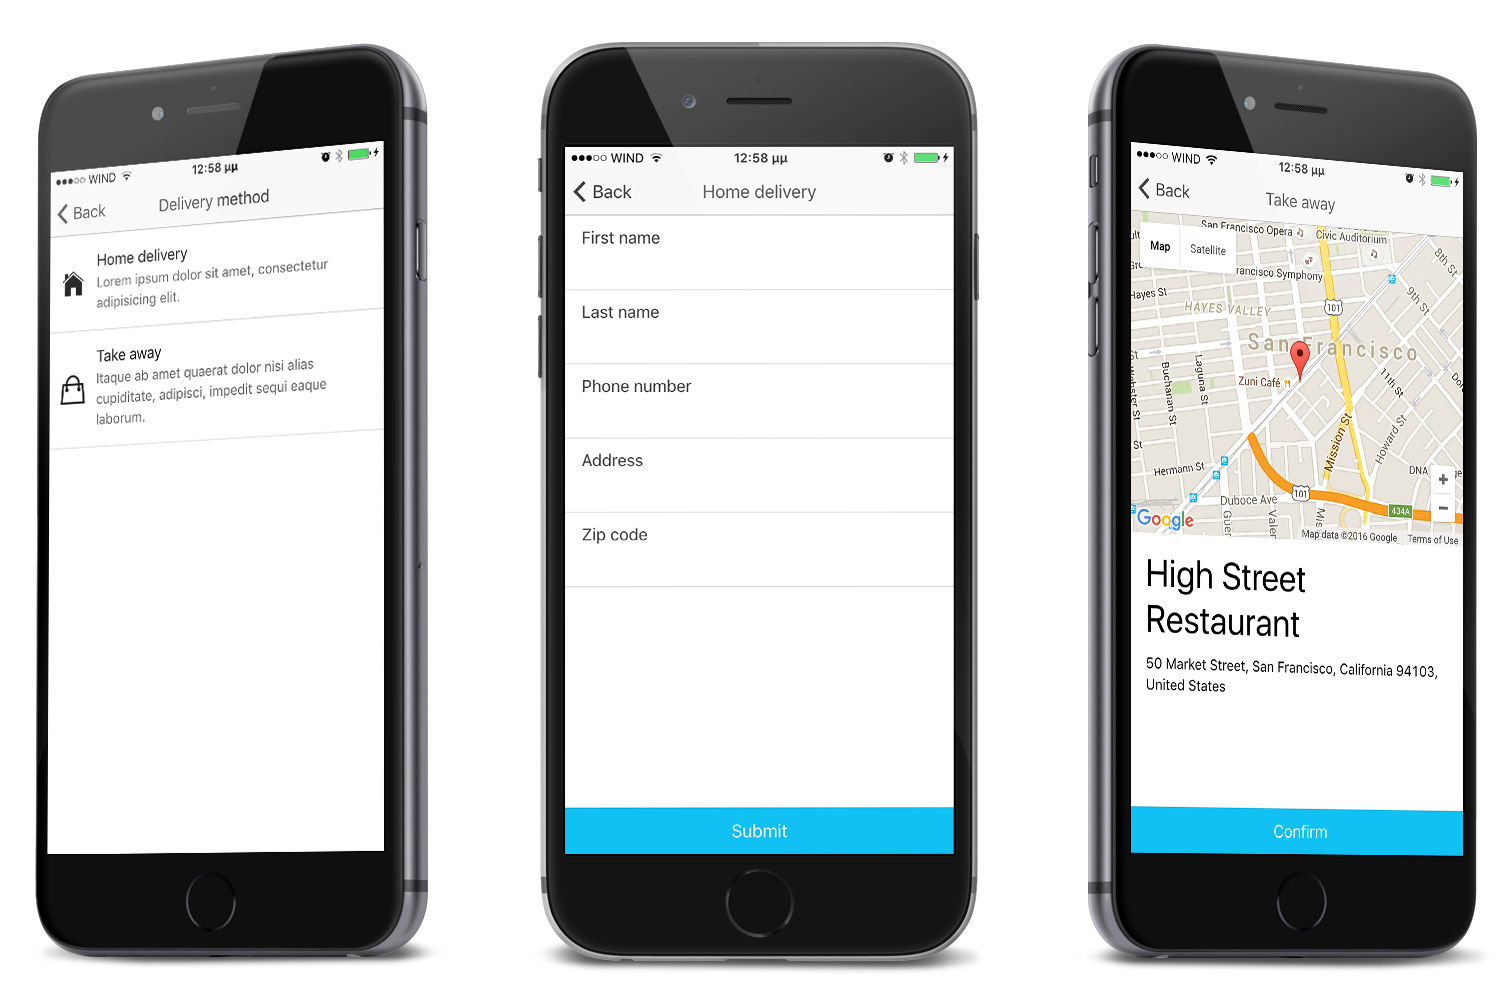 Restaurant Ionic 5 - Full Application with Firebase backend - 13